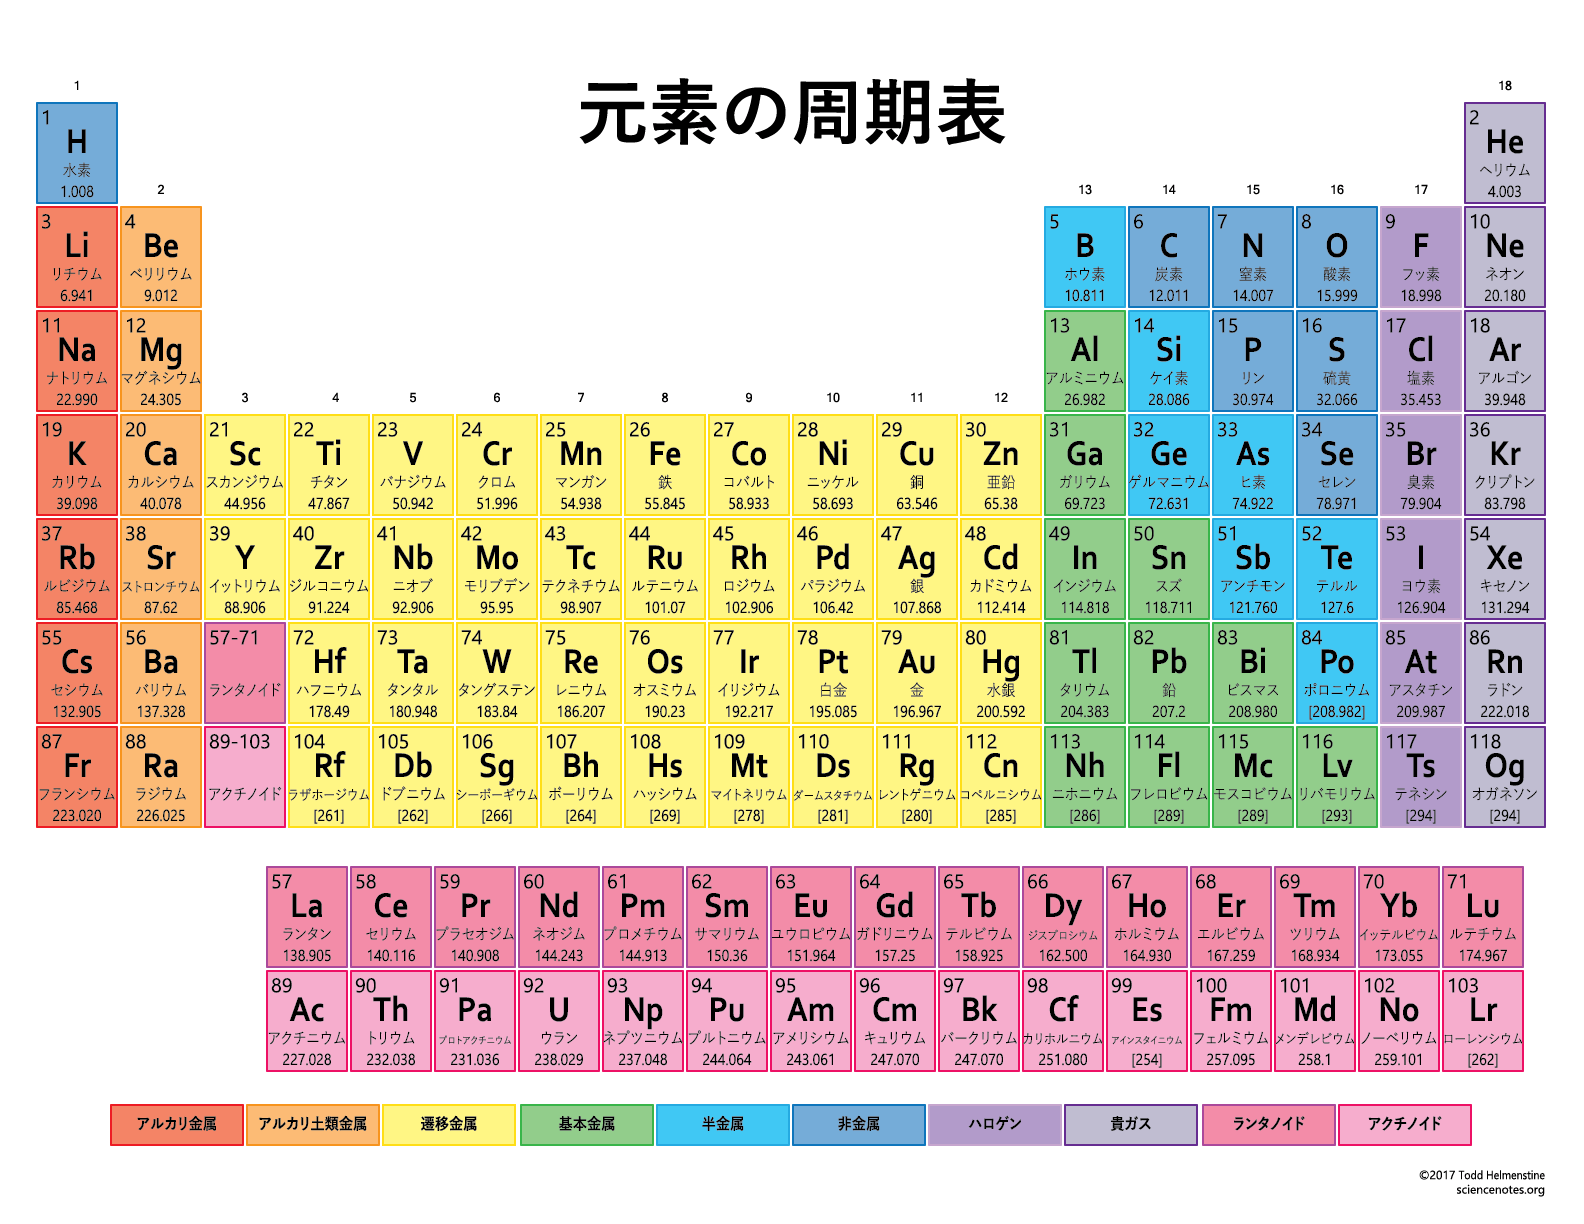 Genso no shuuki hyou japanese periodic table of the elements genso shuuki hyou this color periodic table contains all 118 elements atomic numbers urtaz